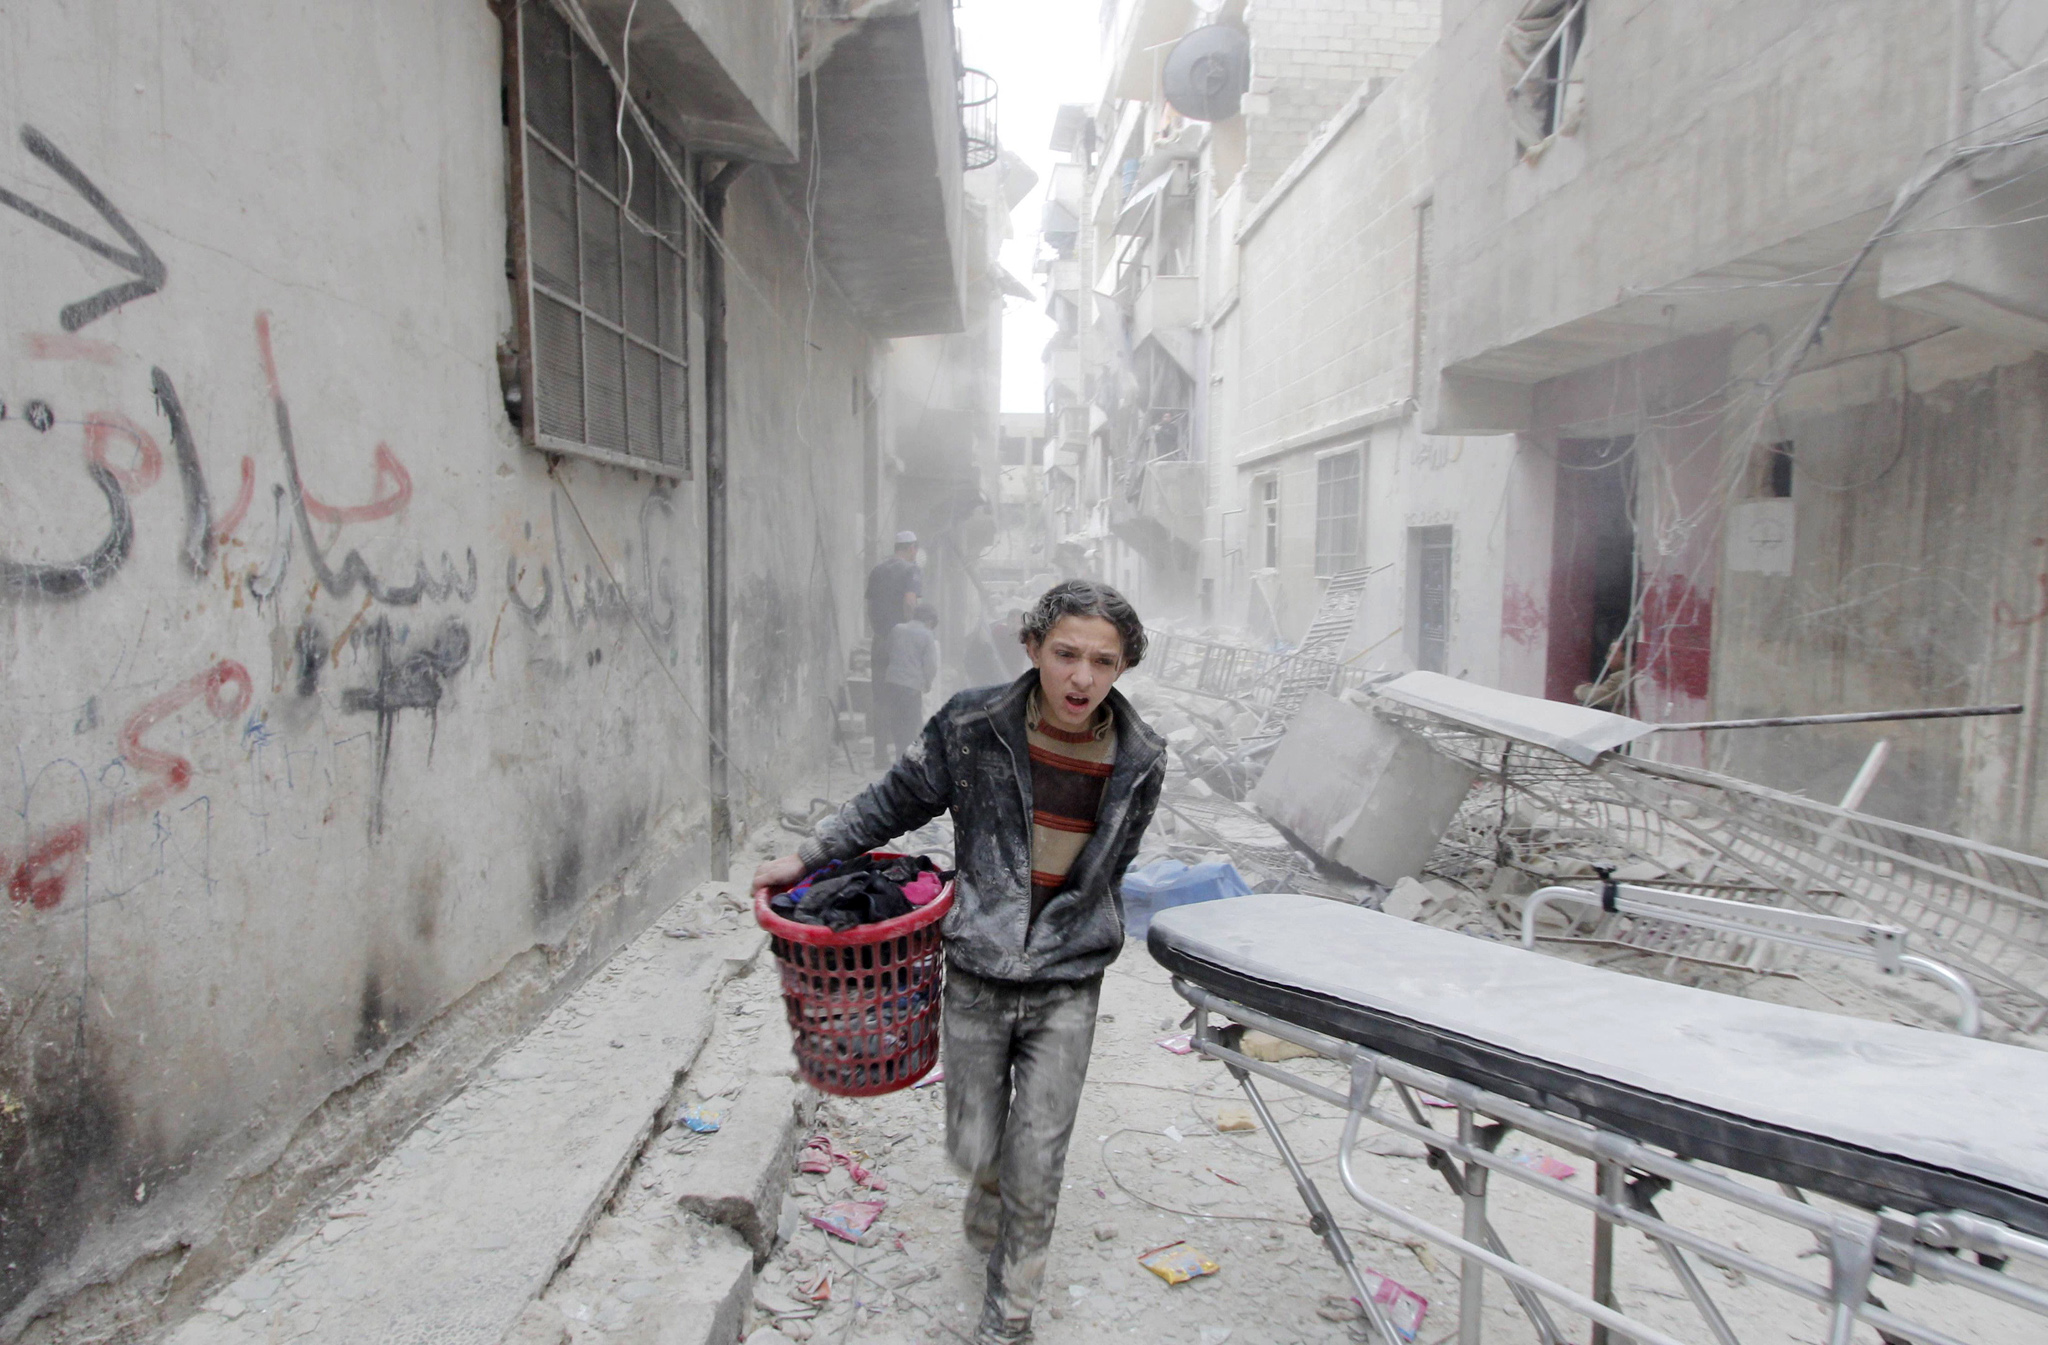 A boy carries his belongings at a site hit by what activists said was a barrel bomb dropped by forces loyal to Syria's President Bashar al-Assad in Aleppo's al-Fardous district, Syria April 2, 2015. REUTERS/Rami Zayat/File Photo